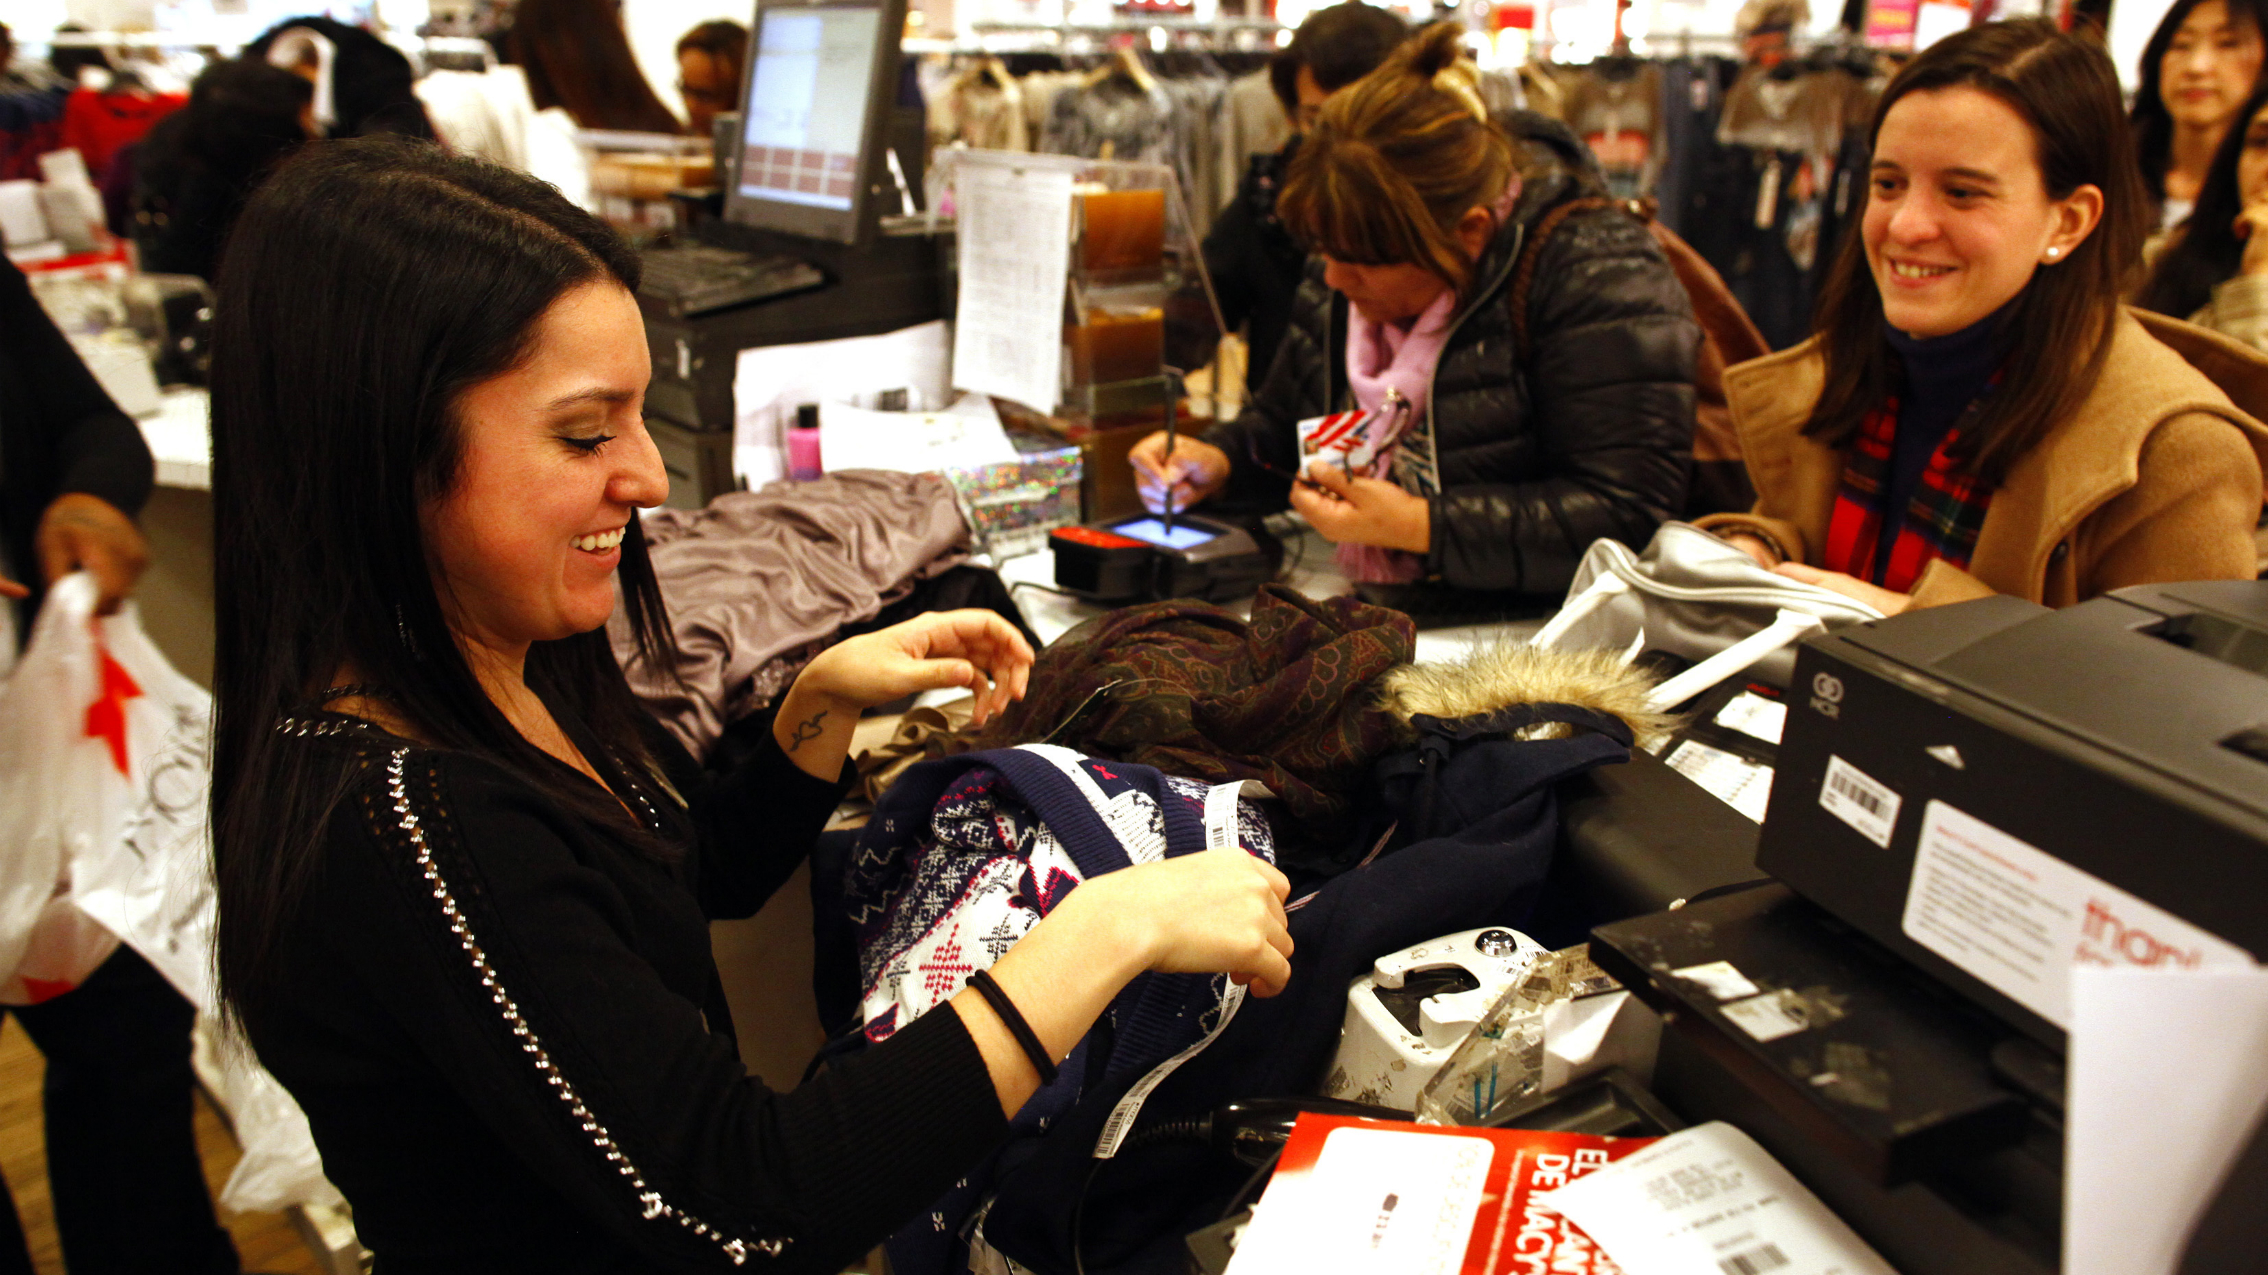 """Customers shop at Macy's department store in New York November 25, 2011. Stores looking to grab as big a piece as possible of what is expected to be a middling holiday shopping season pushed post-Thanksgiving openings into Thursday evening, getting an early start on """"Black Friday,"""" the traditional start to the U.S. holiday shopping season. REUTERS/Eric Thayer"""